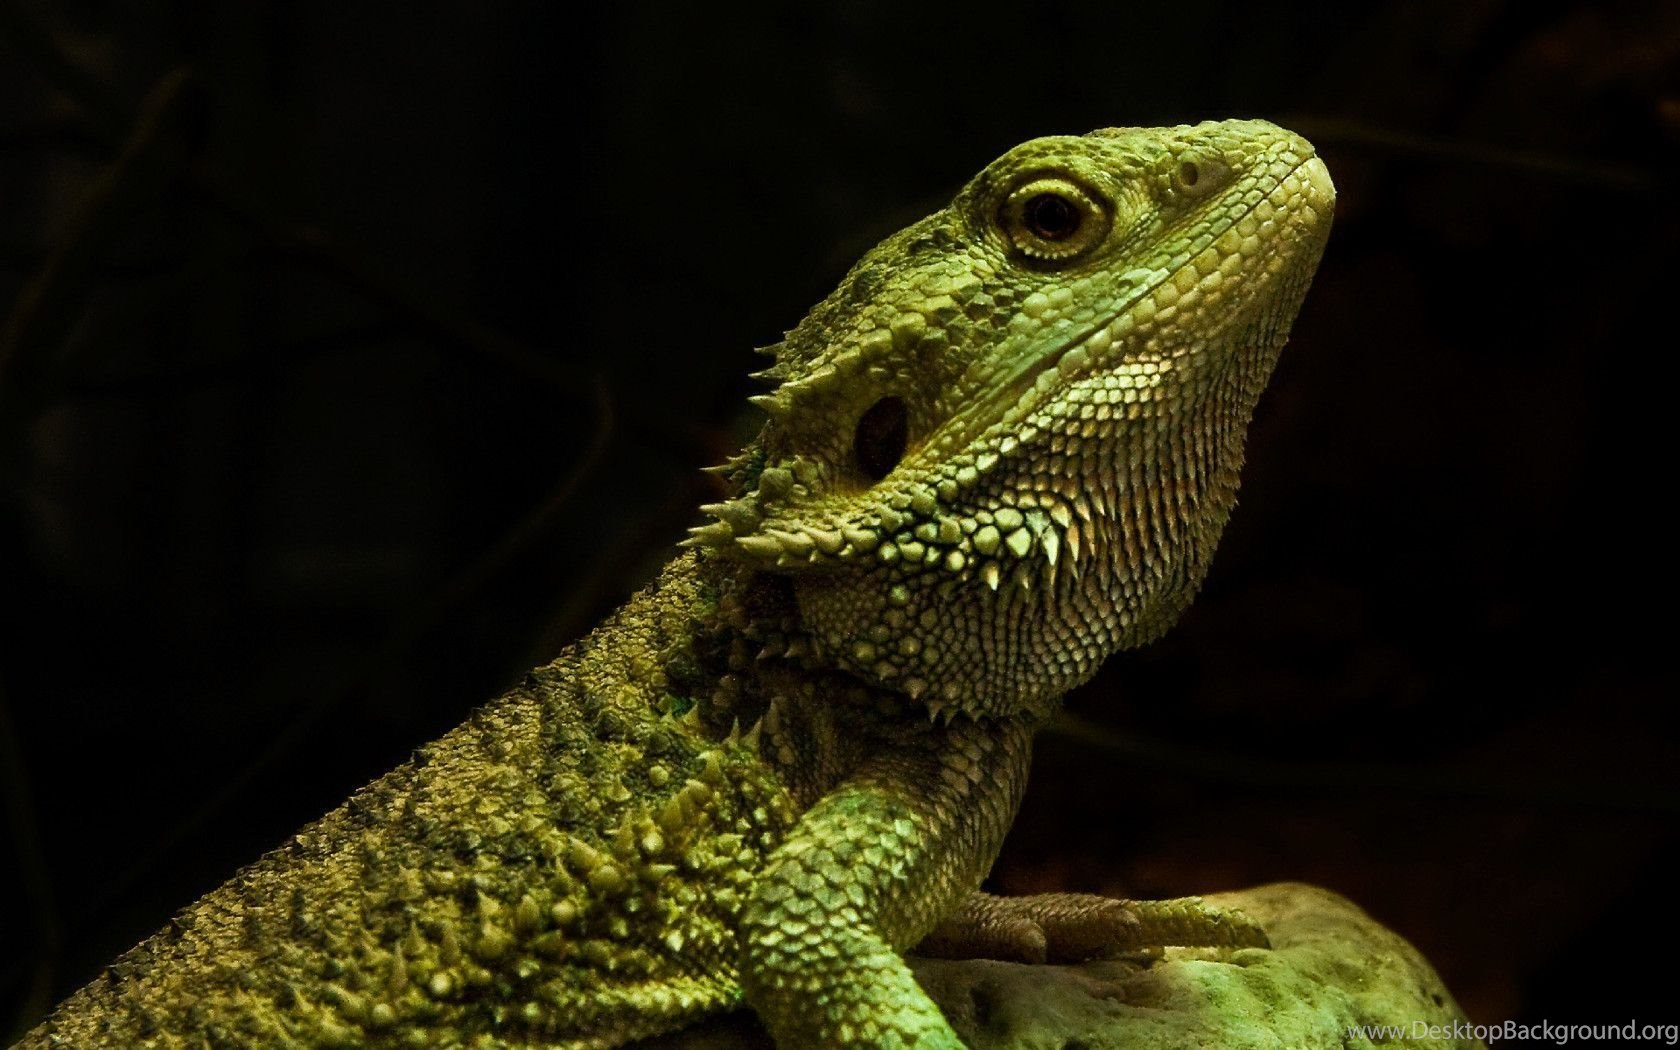 21 Reptile HD Wallpapers Desktop Background